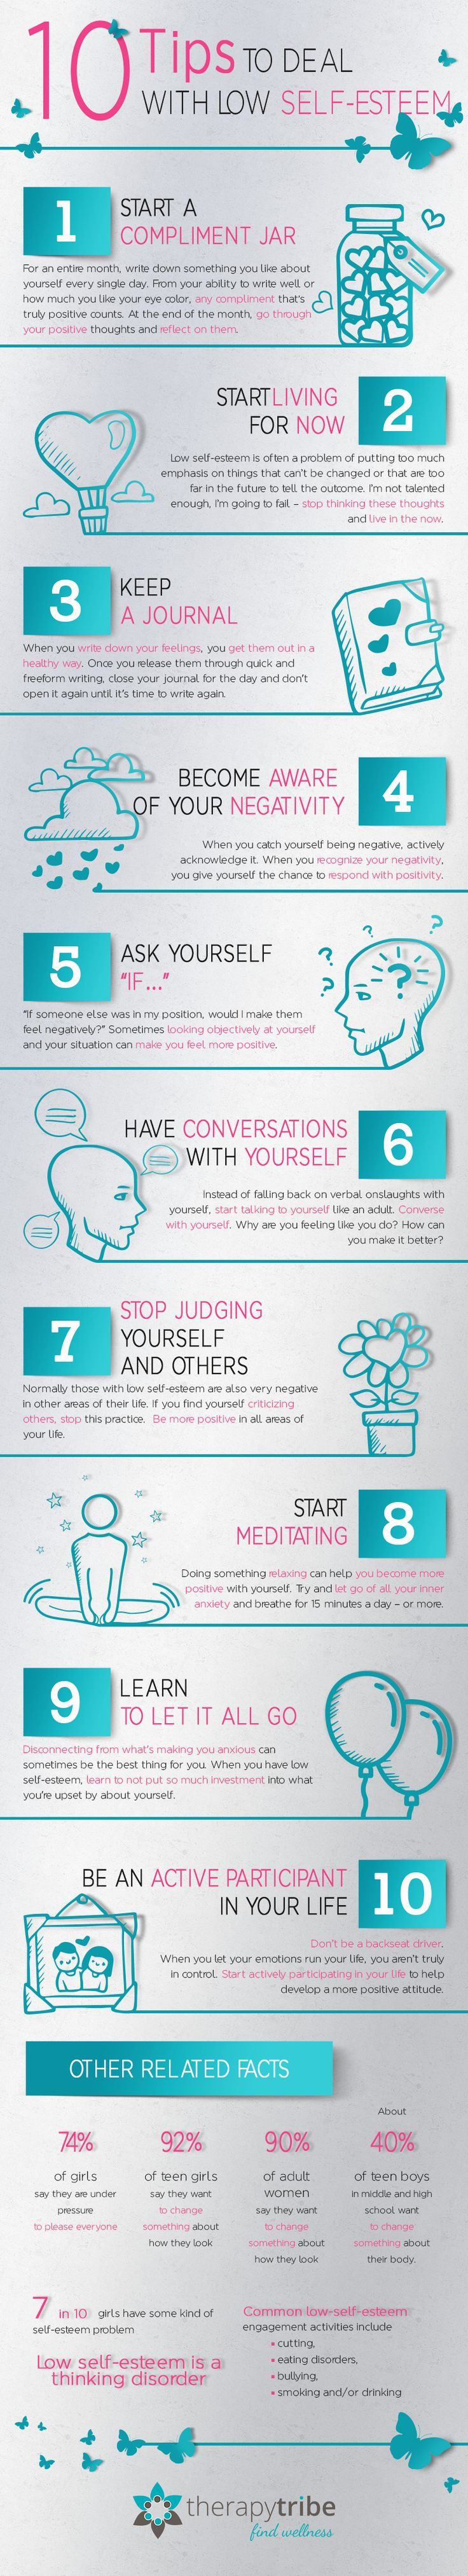 10 Steps To Improve Low Self-Esteem Infographic